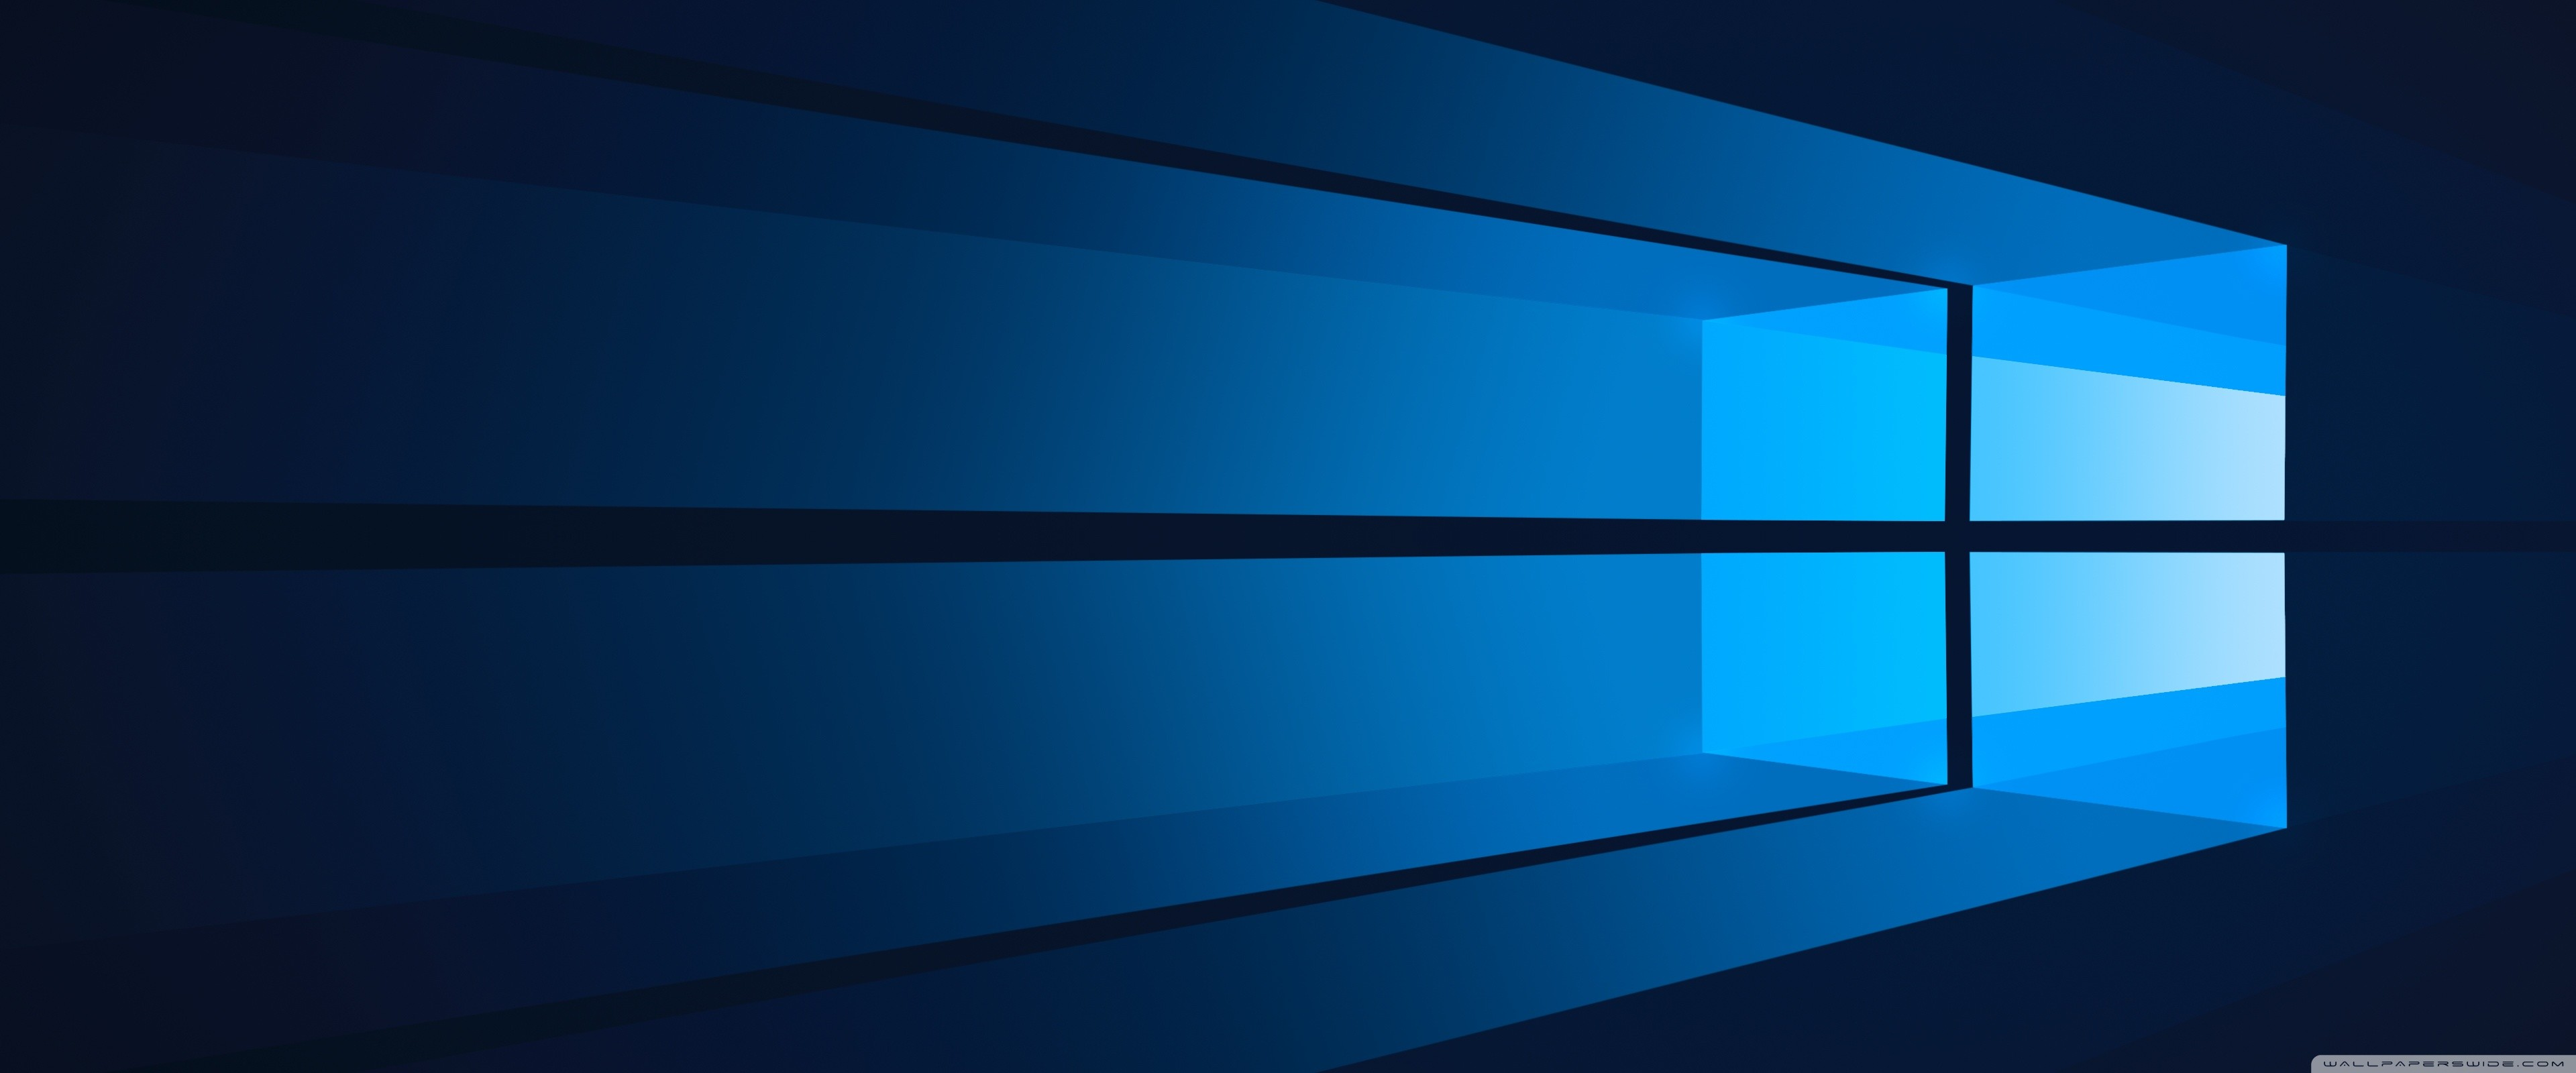 3840x1600 Flat Windows 10 HD desktop wallpaper : Widescreen .